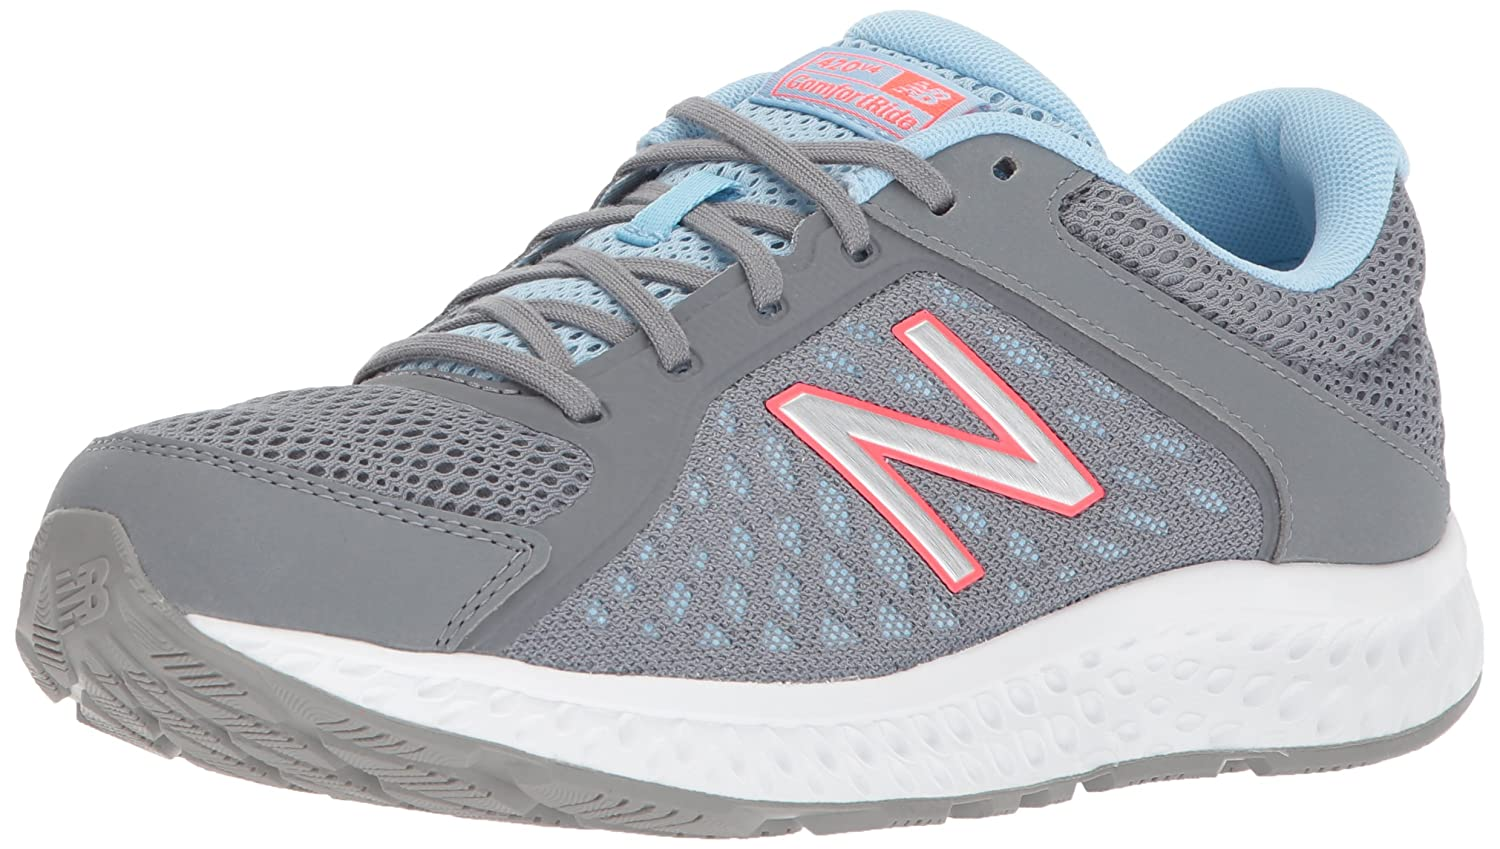 New Balance Women's 420v4 Cushioning Running Shoe B06XSDKMM6 9 D US|Grey/Blue